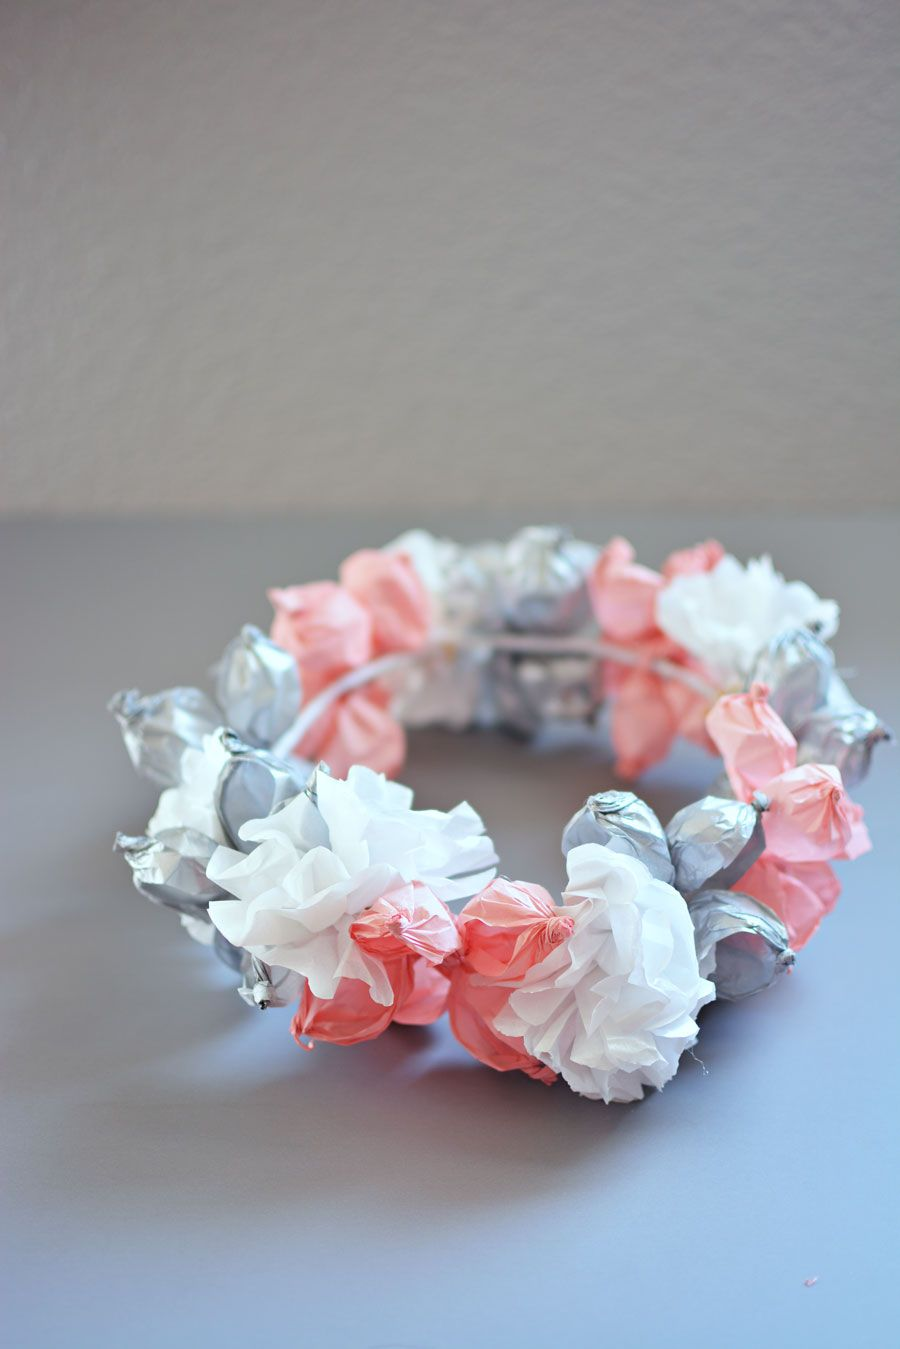 Blog Post At Little Inspiration A Simple And Inexpensive Way To